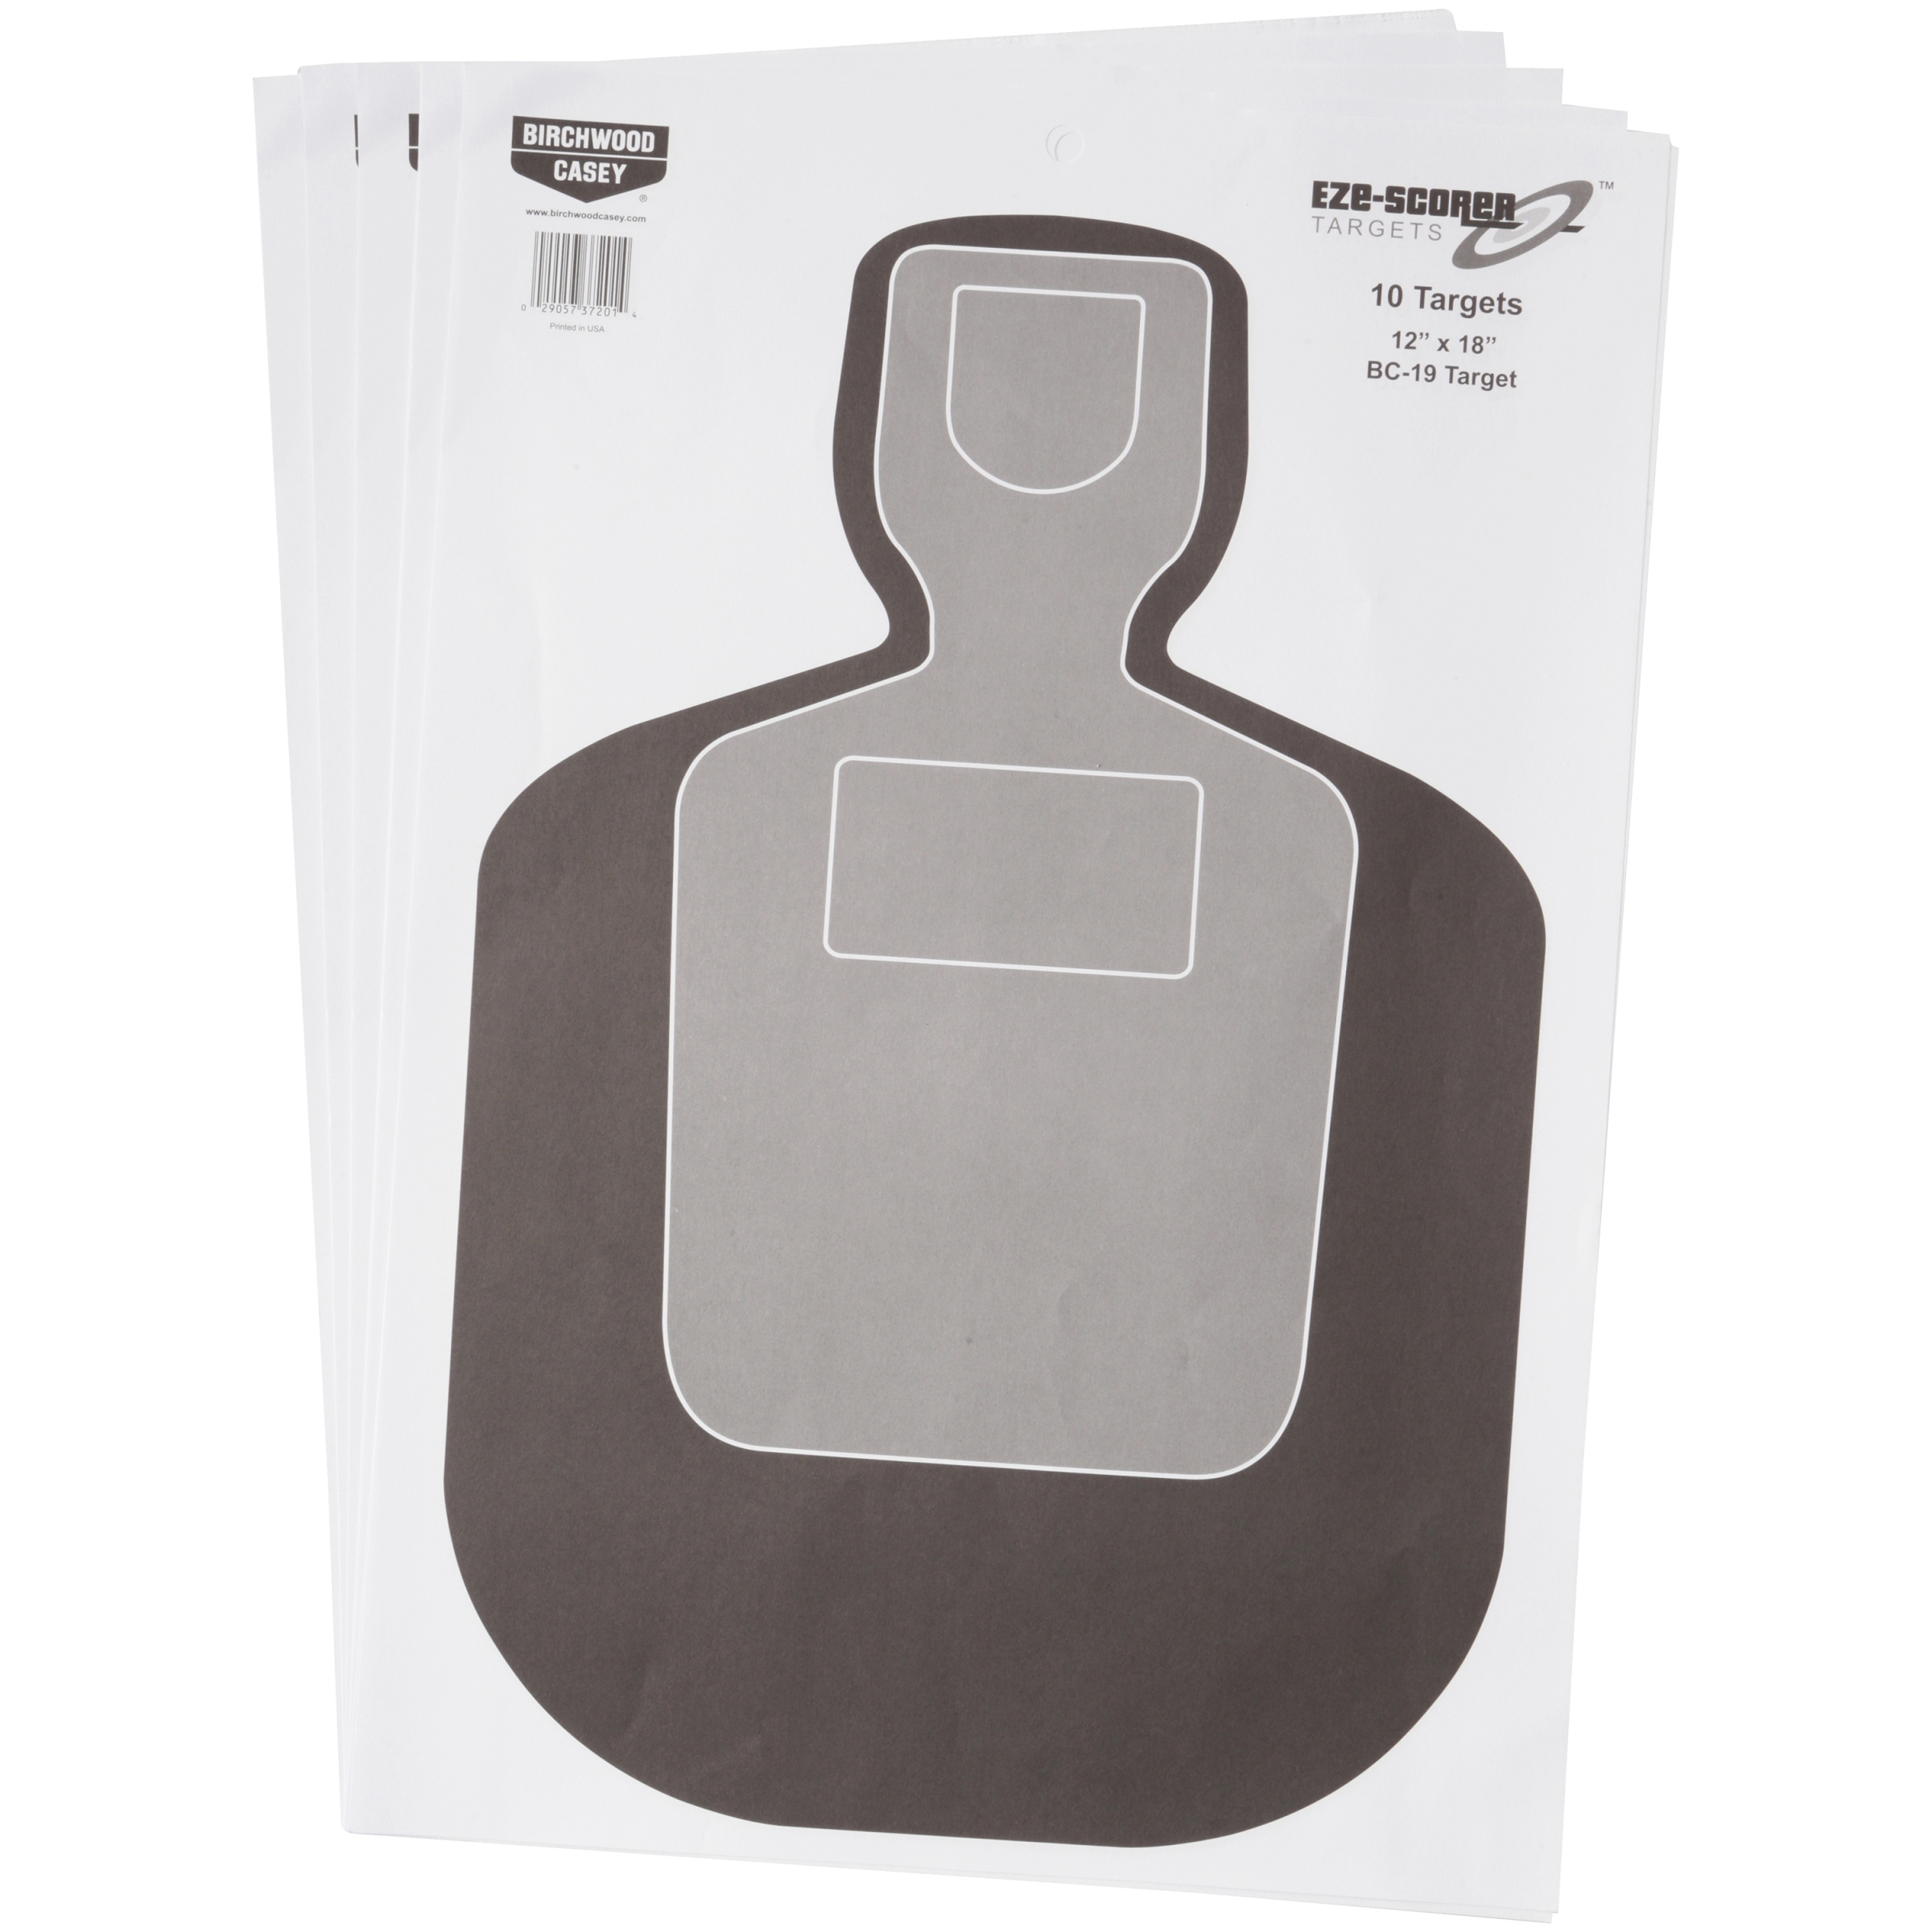 Eze-Scorer™ BC-19 Targets 10 ct Package